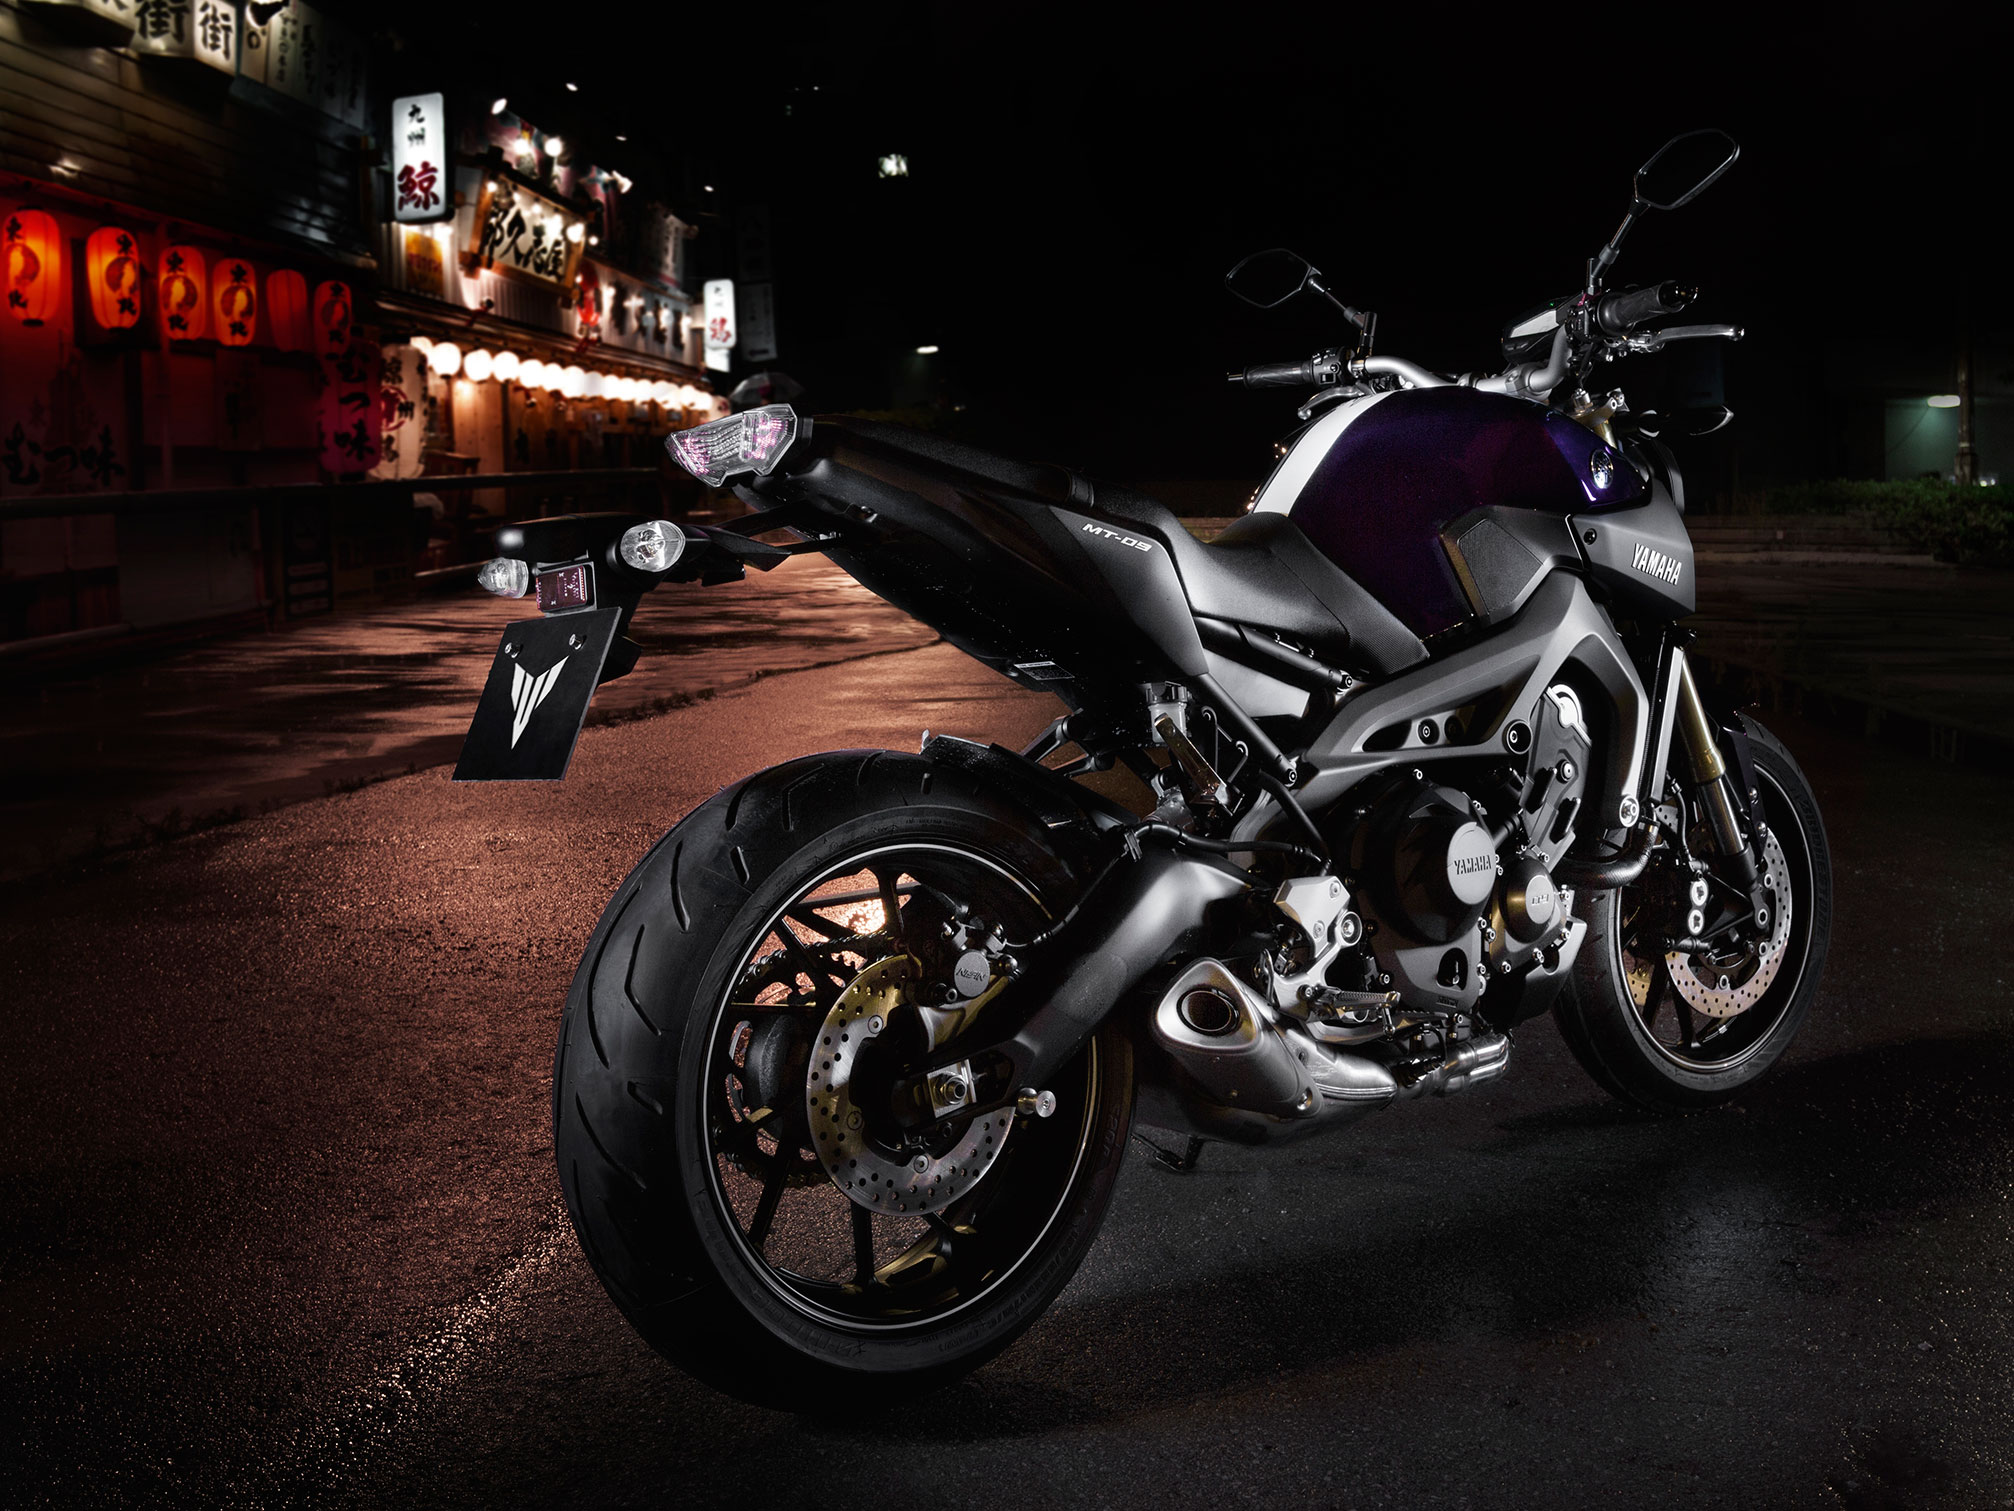 2014 Yamaha MT09 bike motorbike f wallpaper background